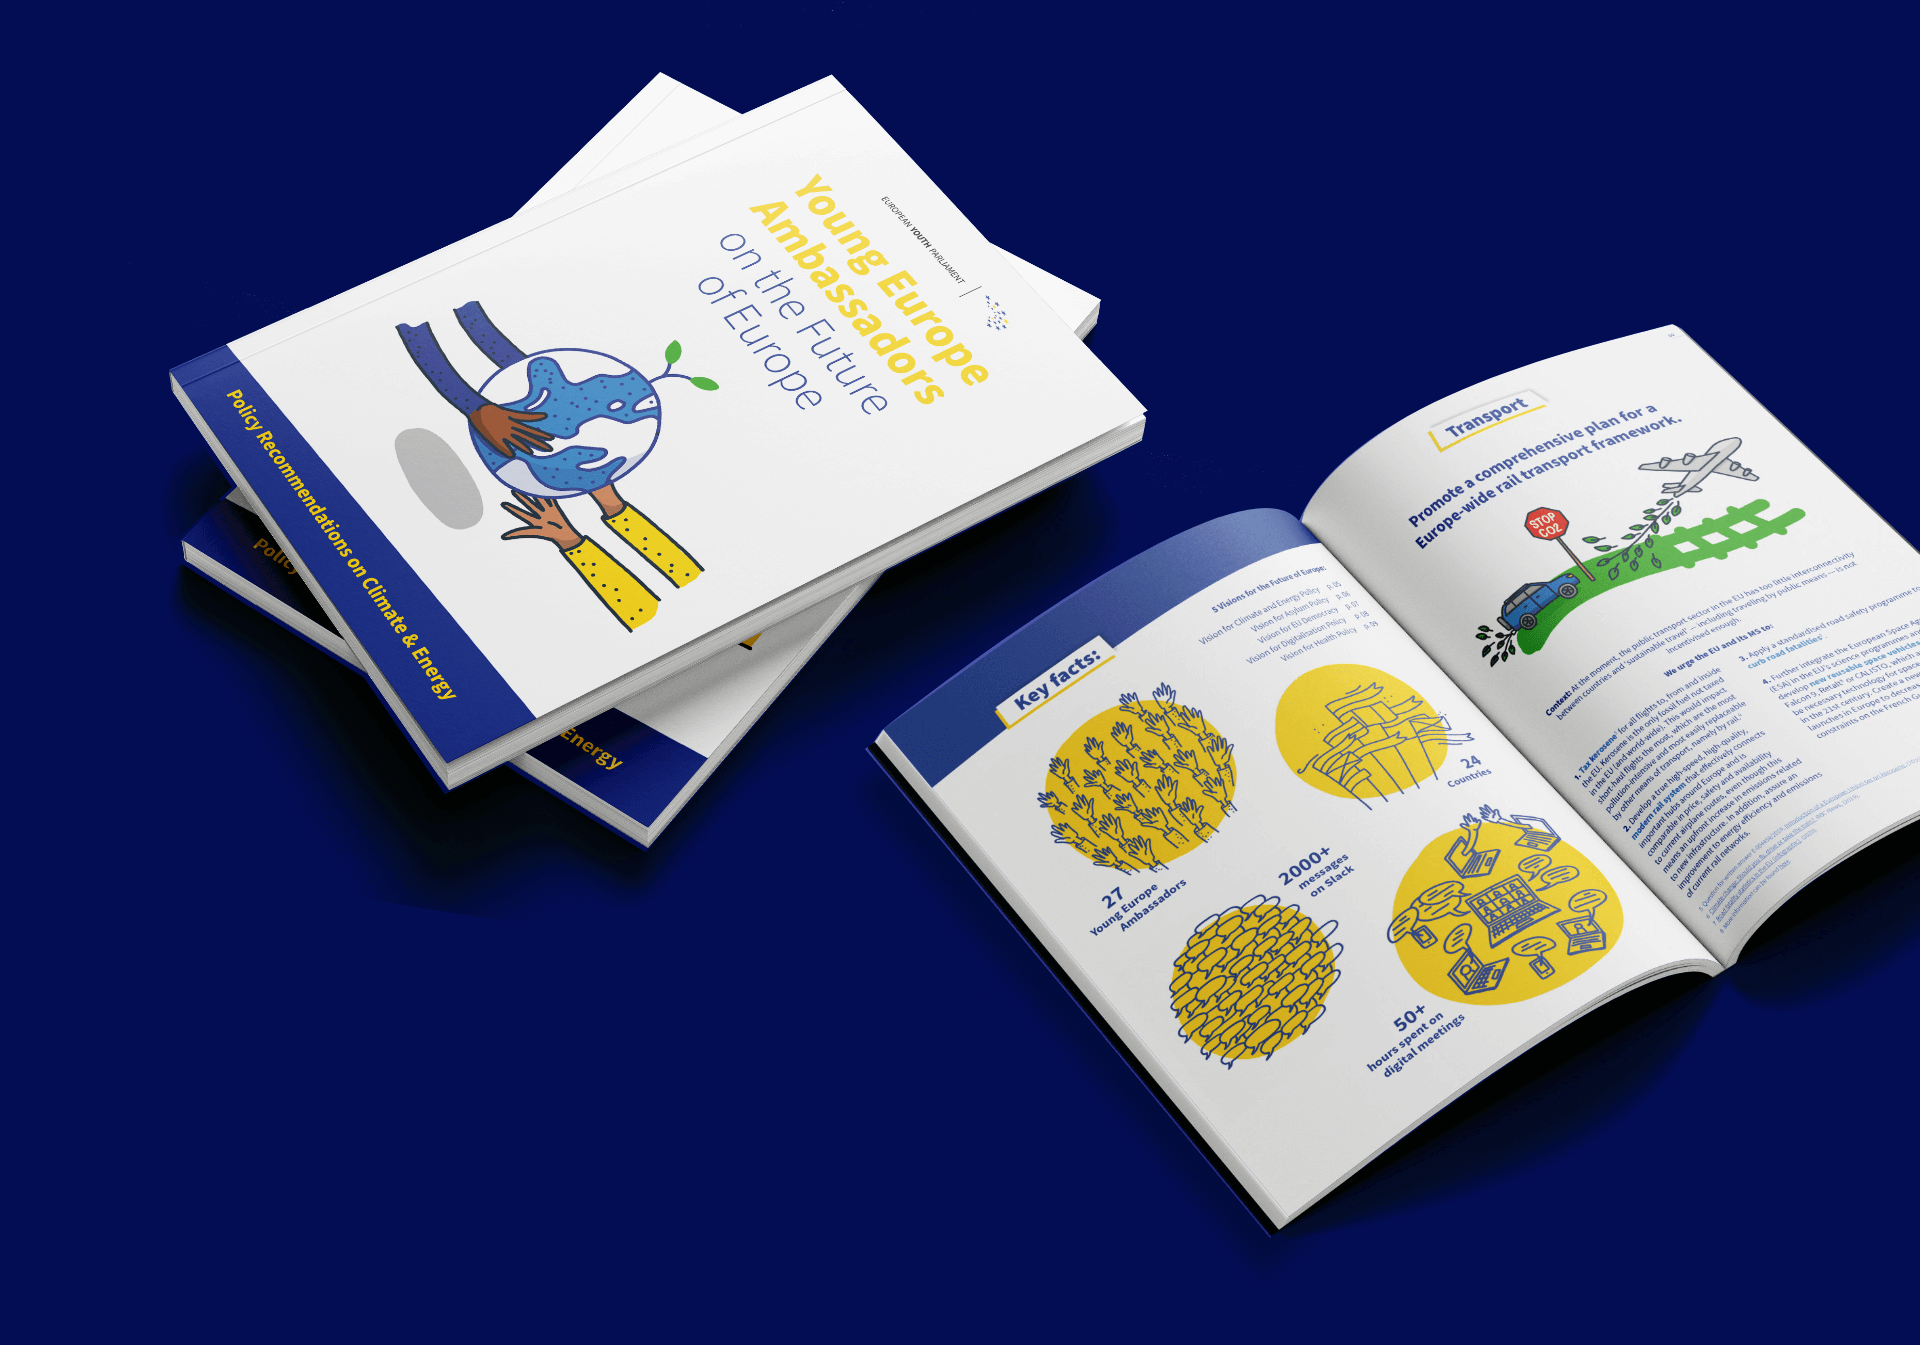 EYP Booklet with illustrations